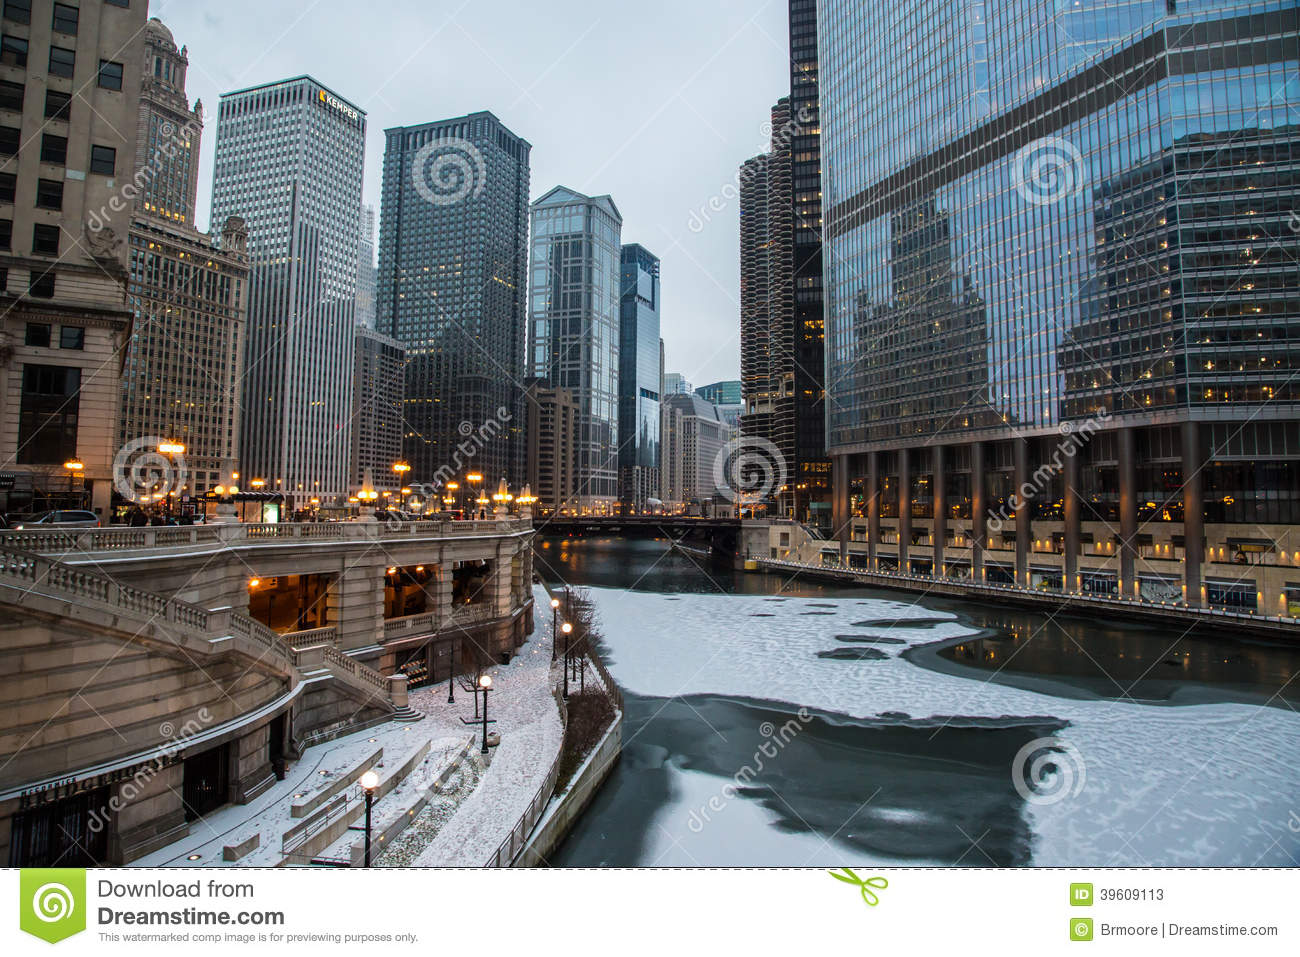 Christmas In Chicago Skyline.Chicago River On Christmas Stock Image Image Of Clouds